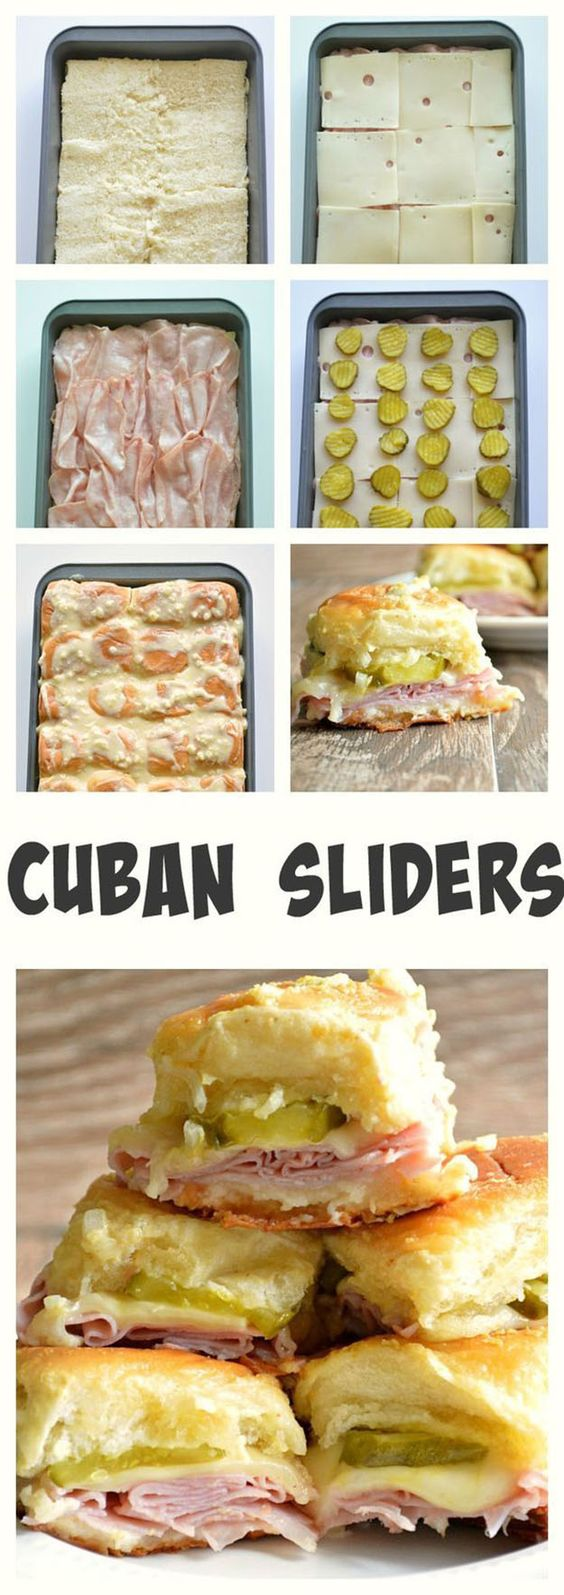 Easy Party Food Ideas | Cheap Food for a Crowd | Cuban Sliders Recipe | DIY Projects and Crafts by DIY JOY